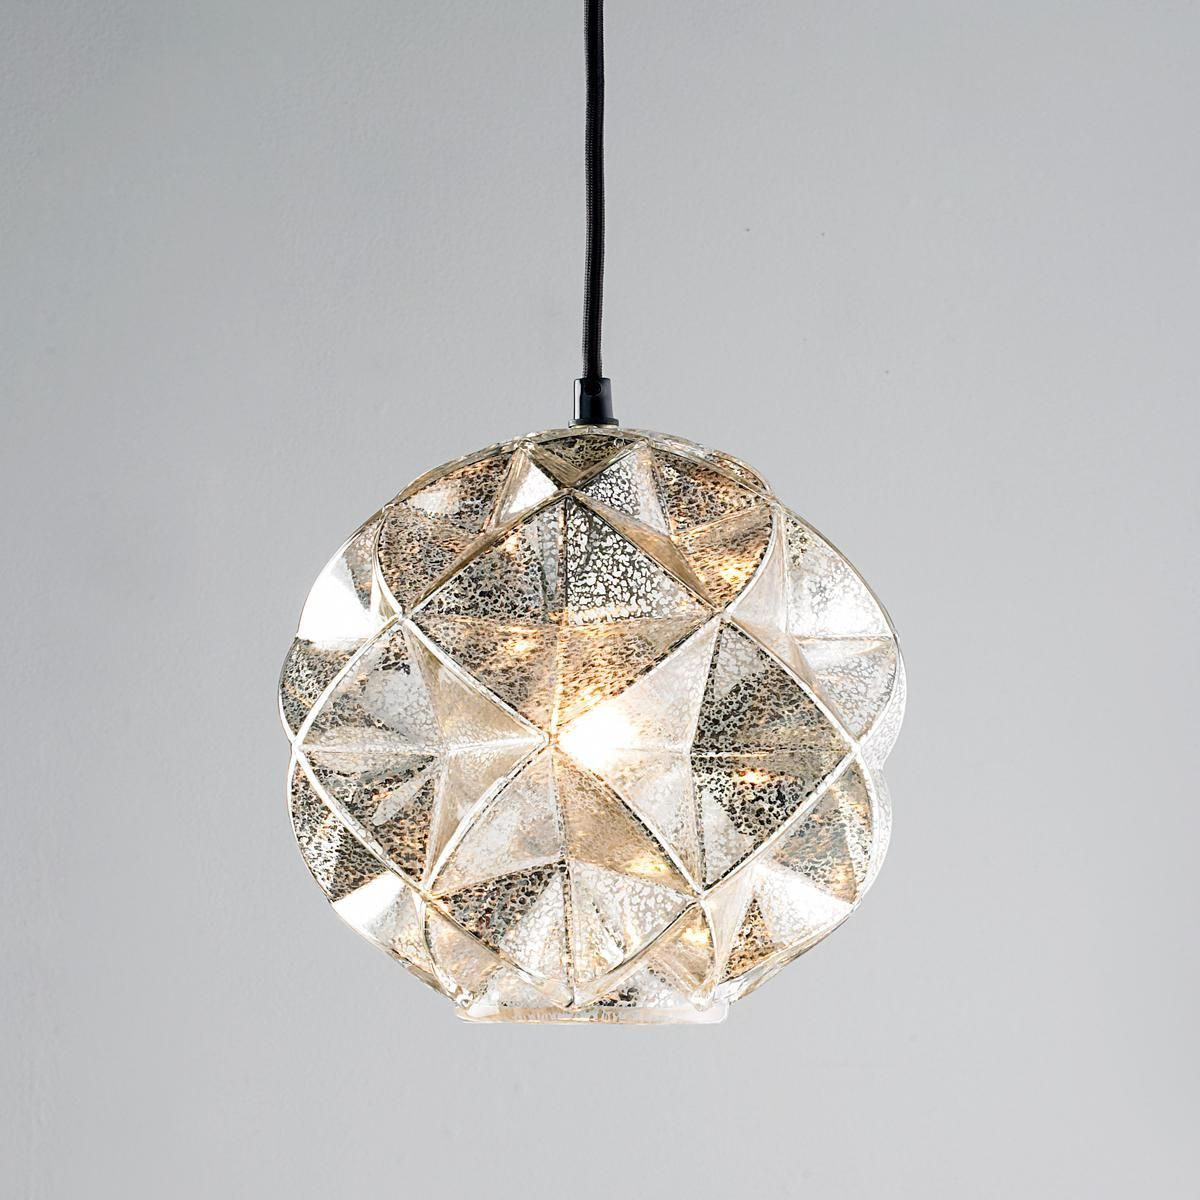 Mercury Glass Pendant Light Fixture Gorgeous Mercury Glass Geodesic Dome Pendant Light  Mercury Glass Pendant Review